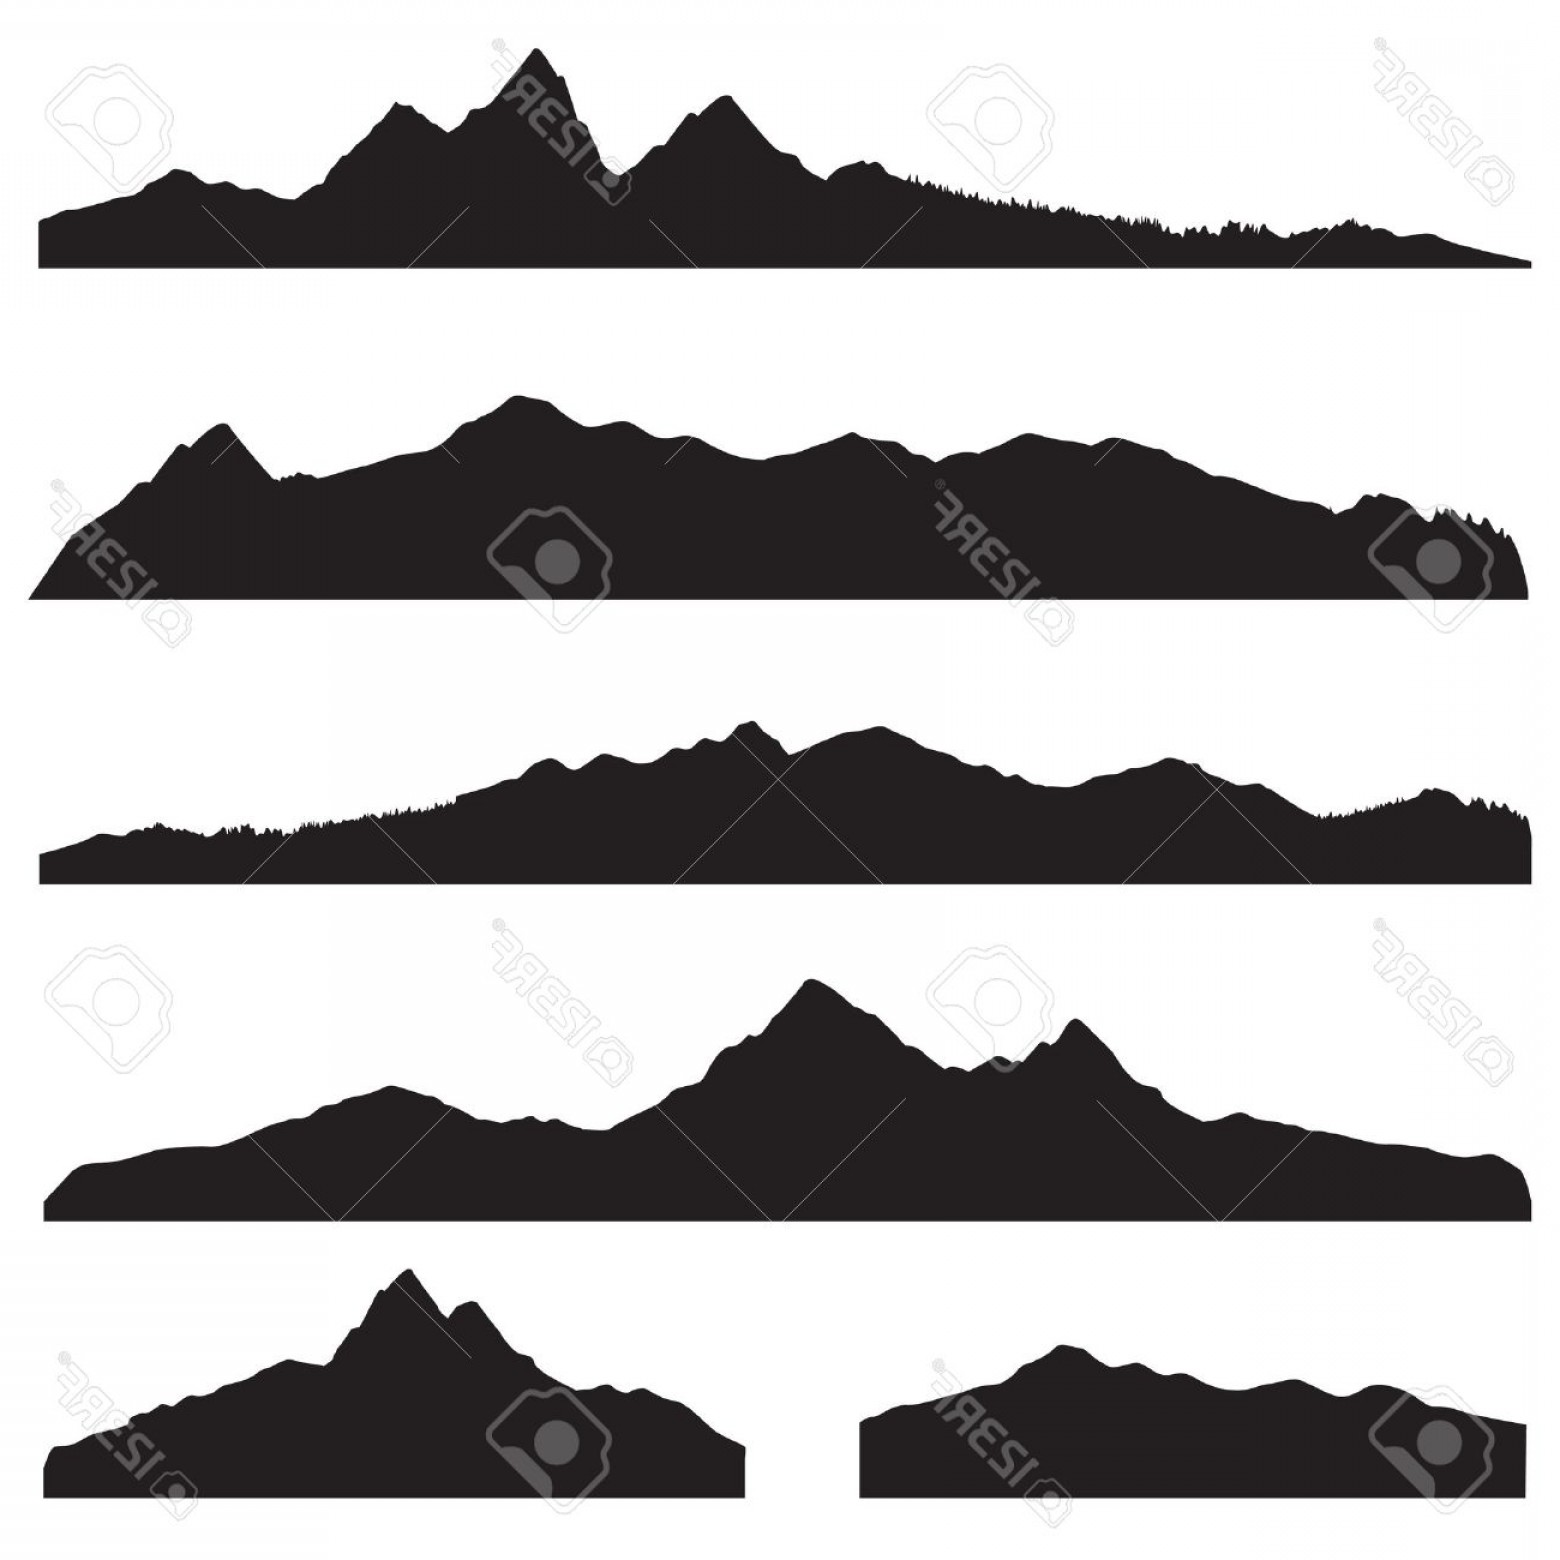 White Mountain Silhouette Vector Free: Photostock Vector Mountains Landscape Silhouette Set Abstract High Mountain Border Background Collection